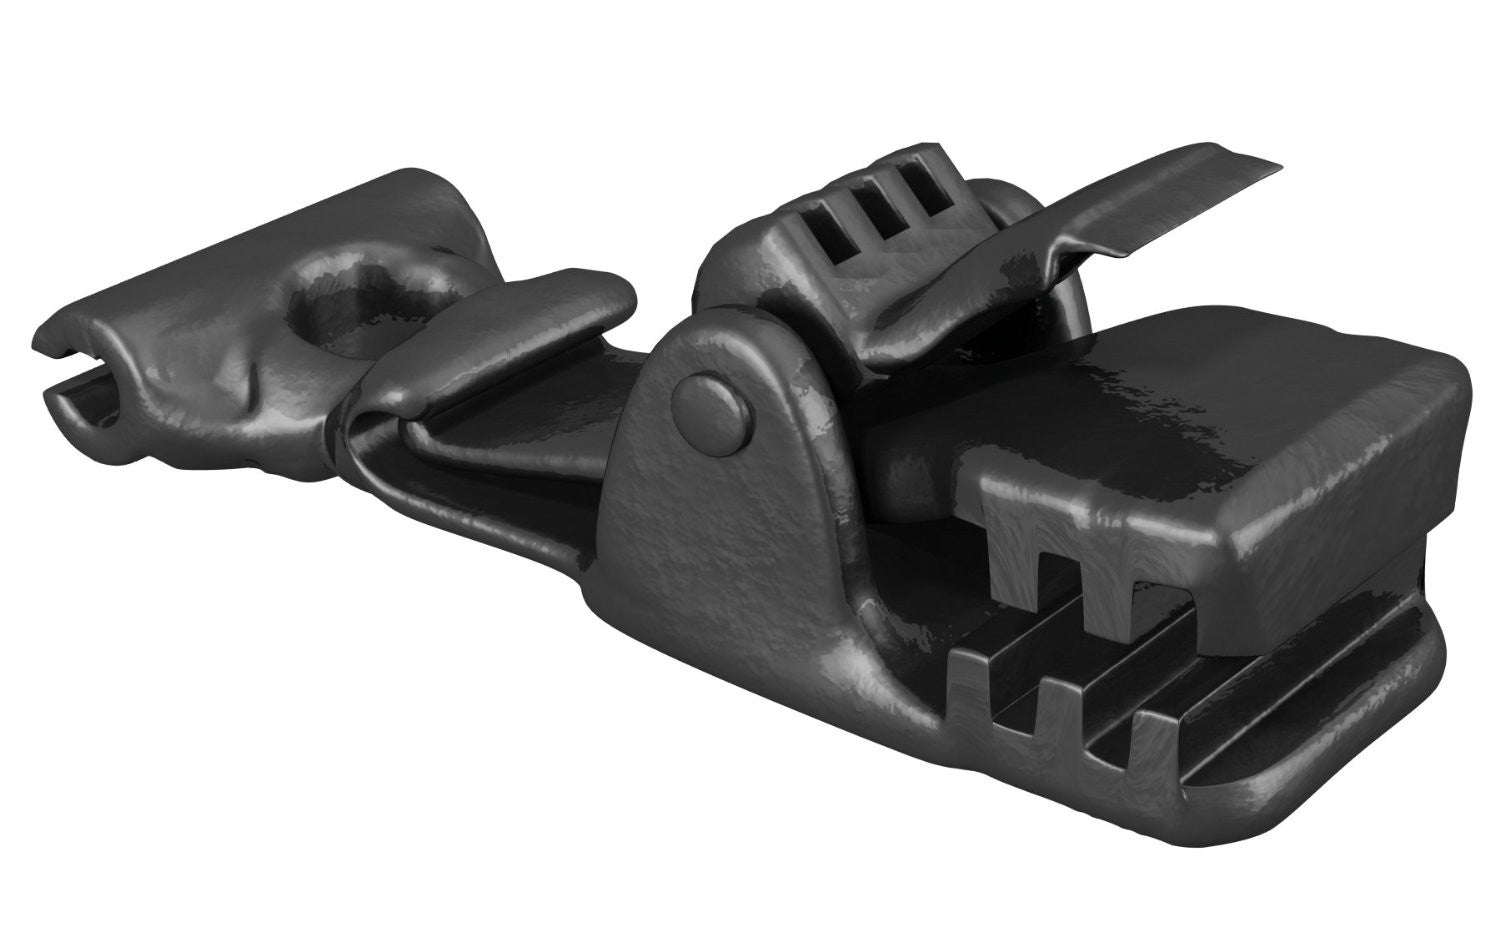 The Dirty Gardener Universal Heavy Duty Locking Jaws Clip/Tarp Clamp